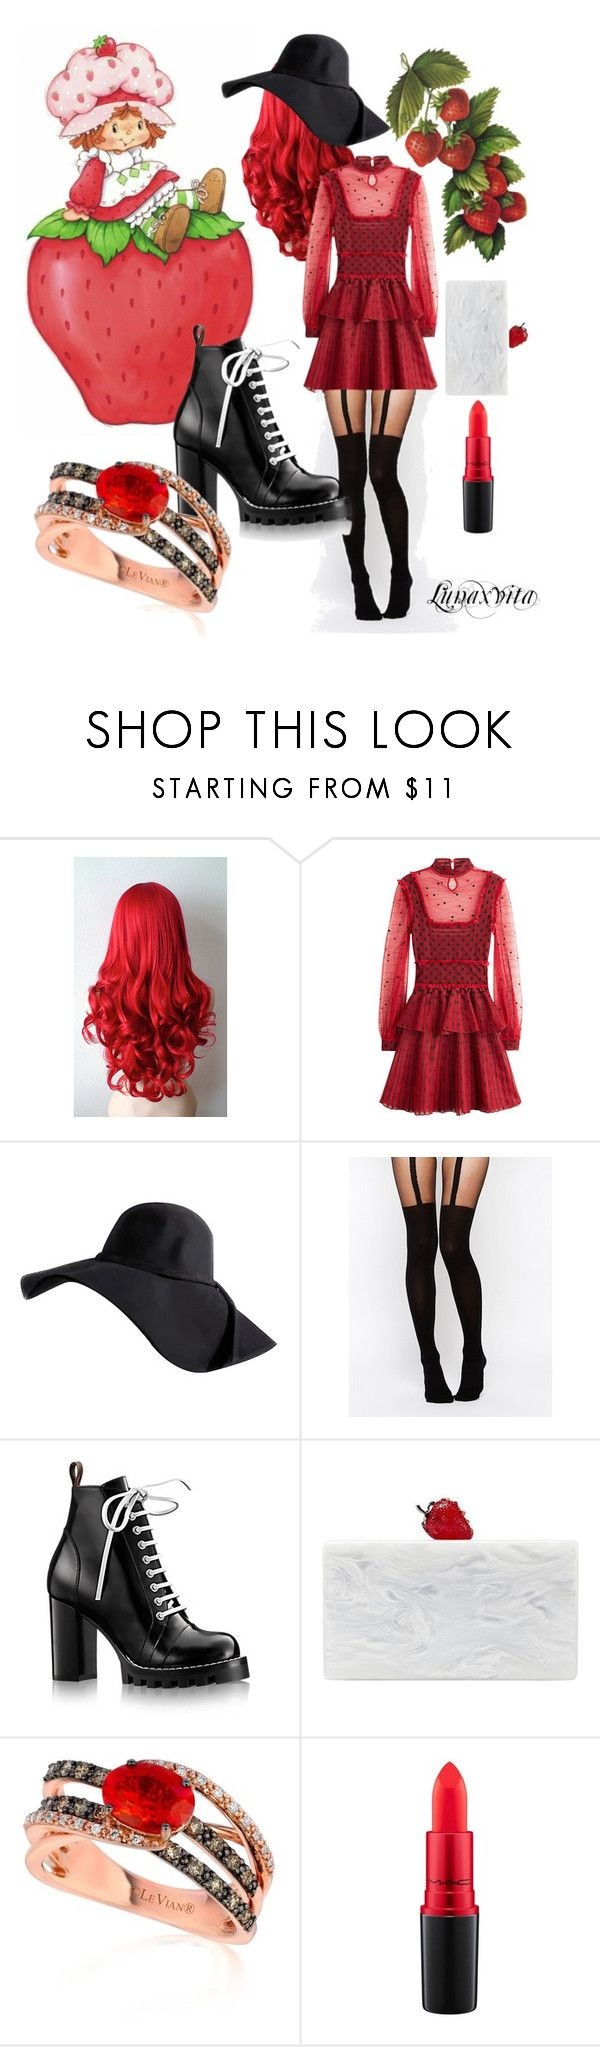 """Strawberry Shortcake"" by lunaxvita ❤ liked on Polyvore featuring Alexander McQueen, ASOS, Edie Parker, LE VIAN and MAC Cosmetics"